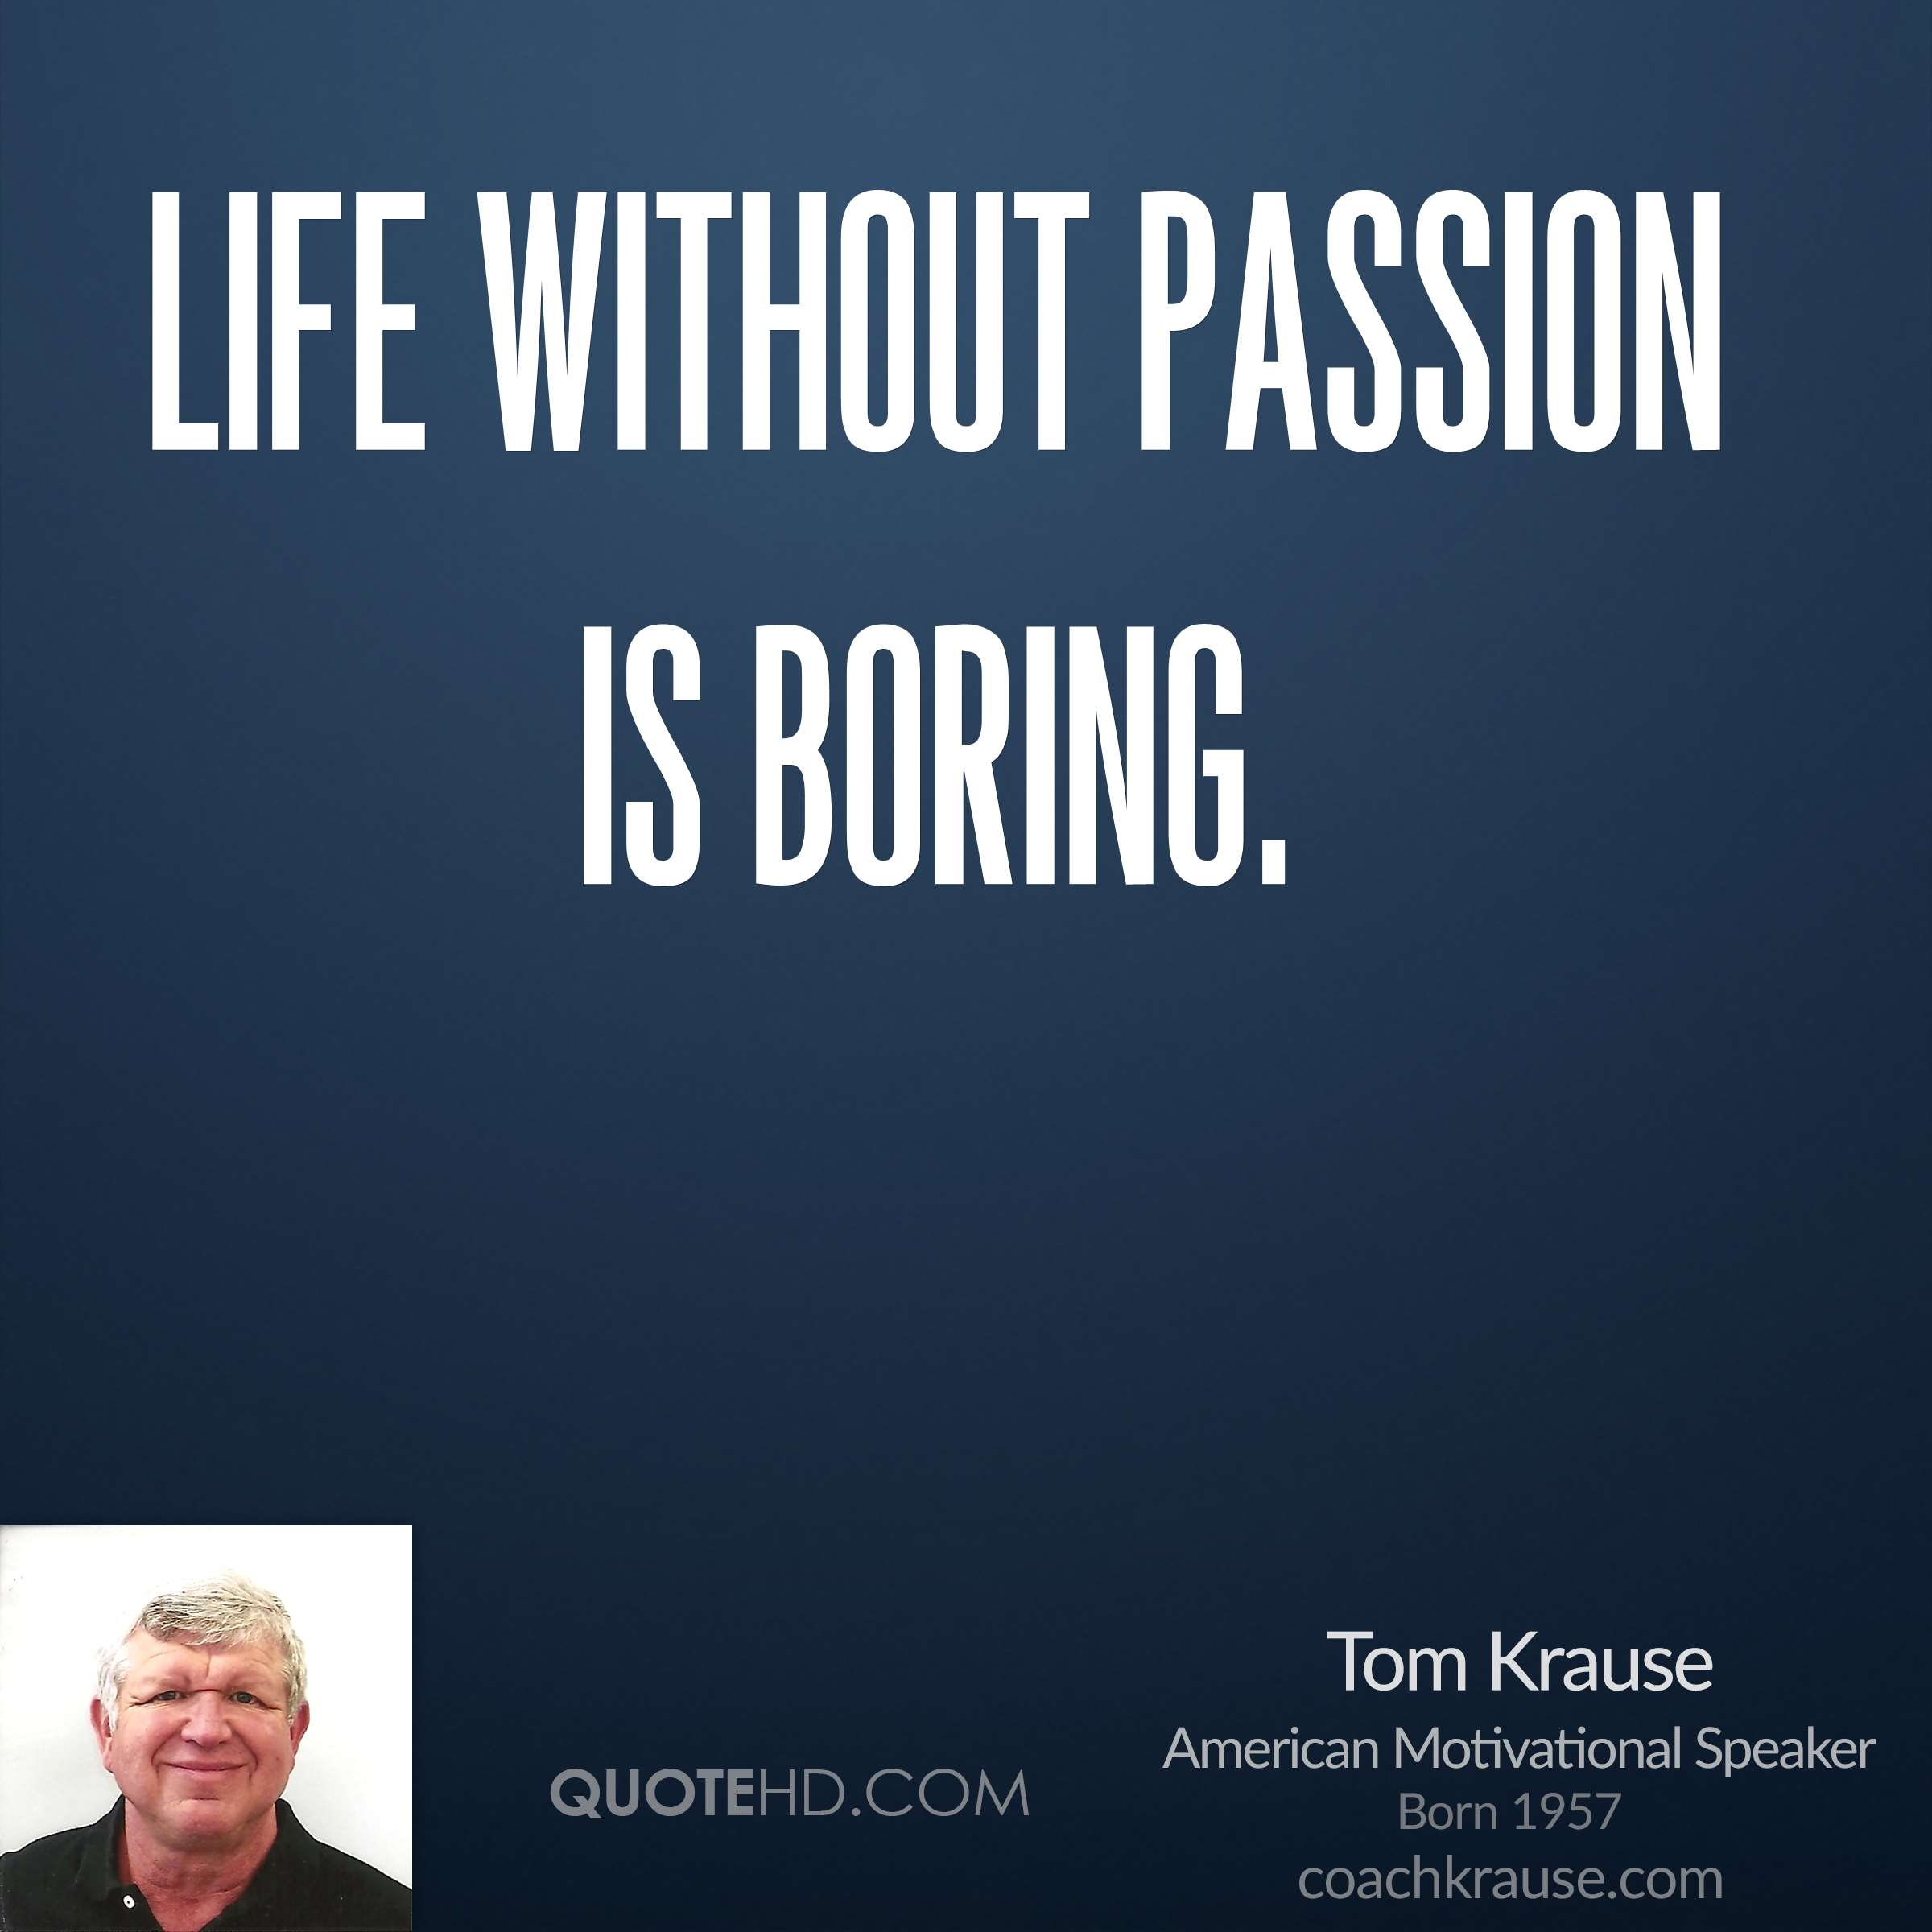 Life without passion is boring.